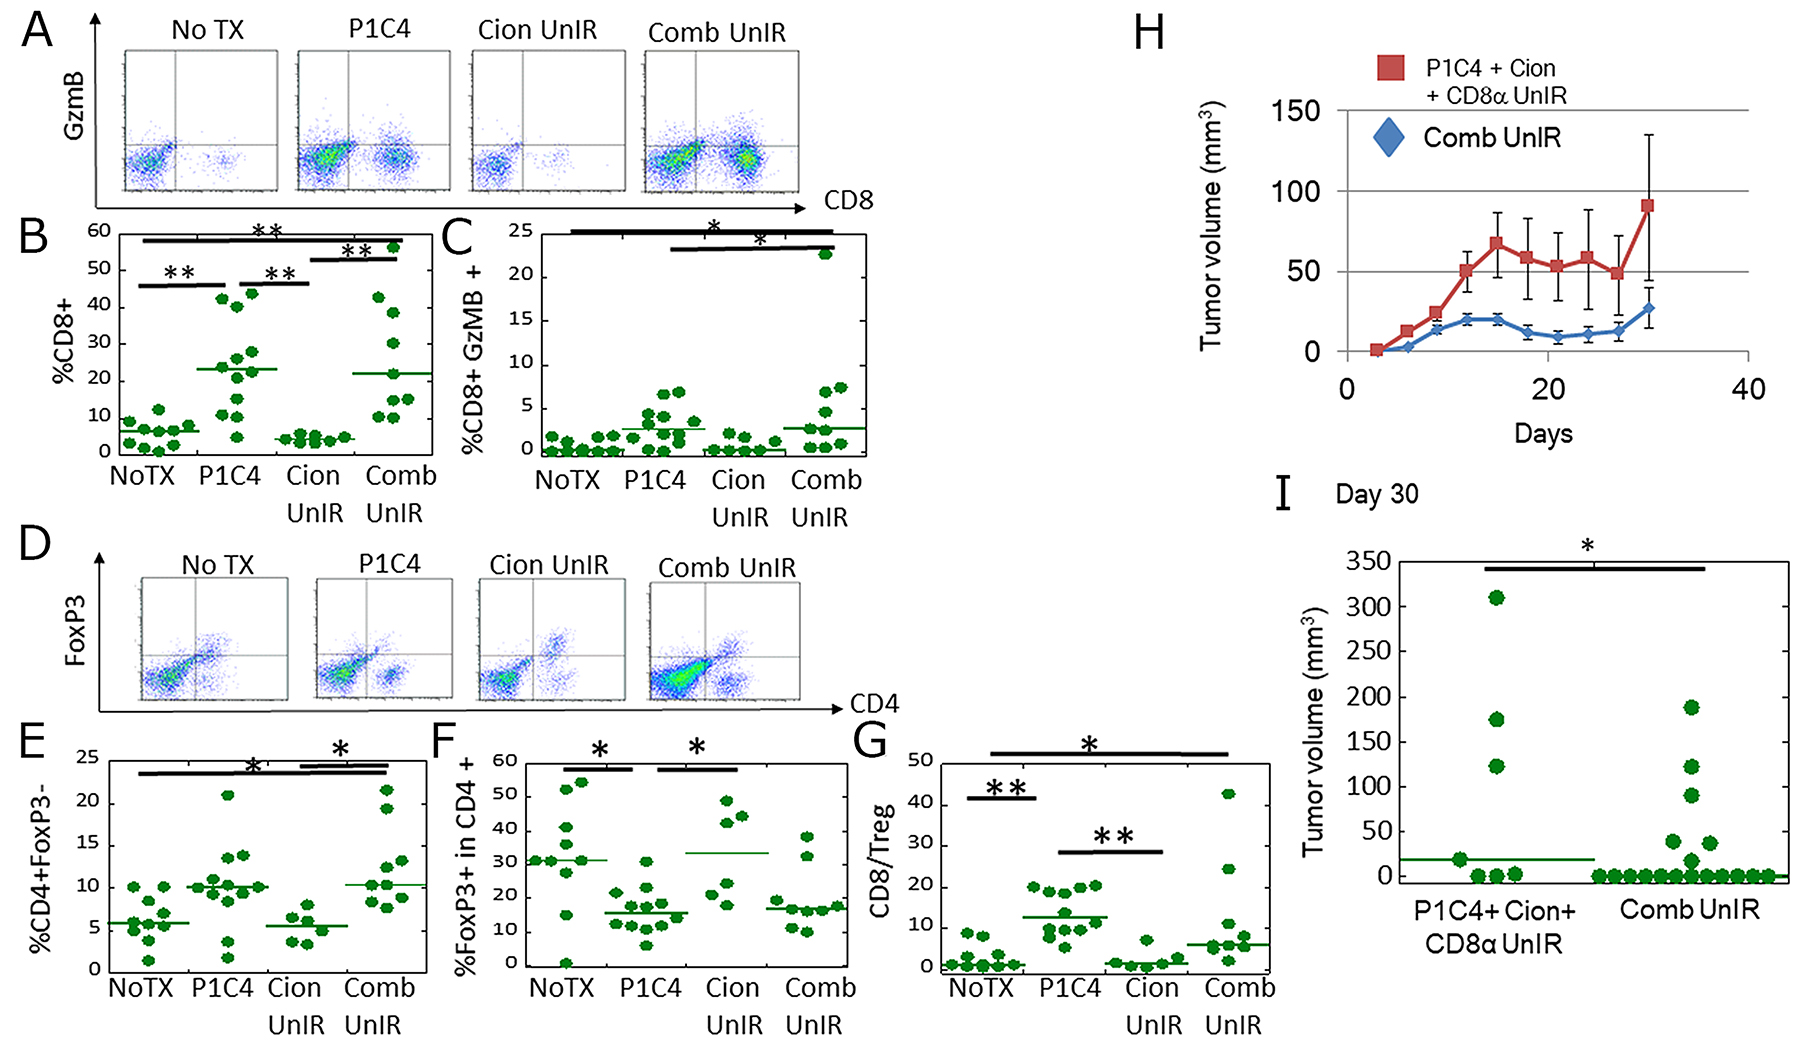 Analysis of CD8+/GzmB+ cells and CD4/Foxp3+ cells in tumor infiltrating lymphocytes (TILs) at a distant site.